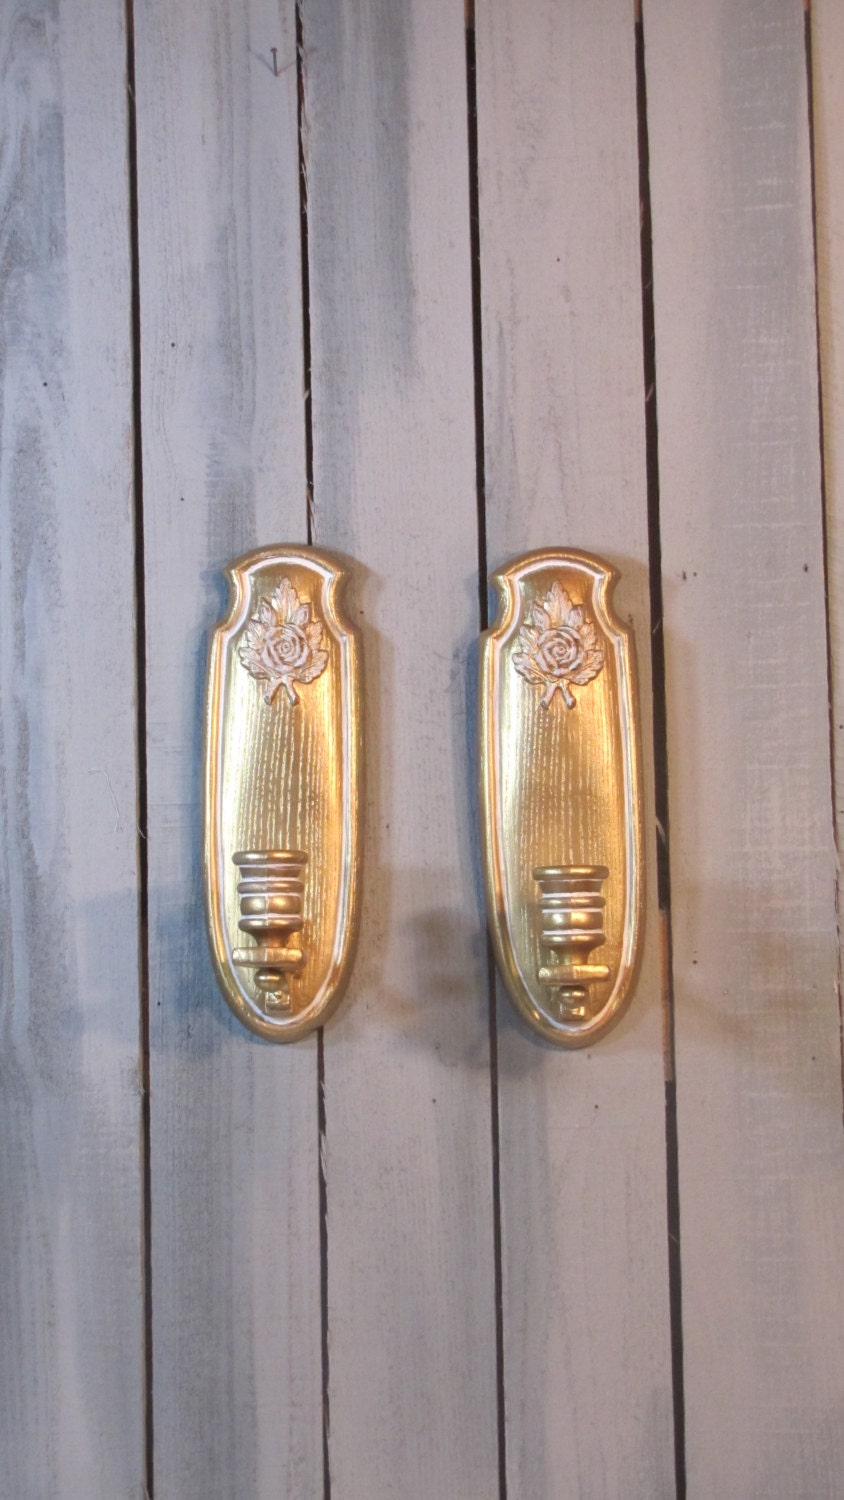 Gold Wall Sconces For Candles : Candle Sconces Rose Motif Gold White Wall Home Decor